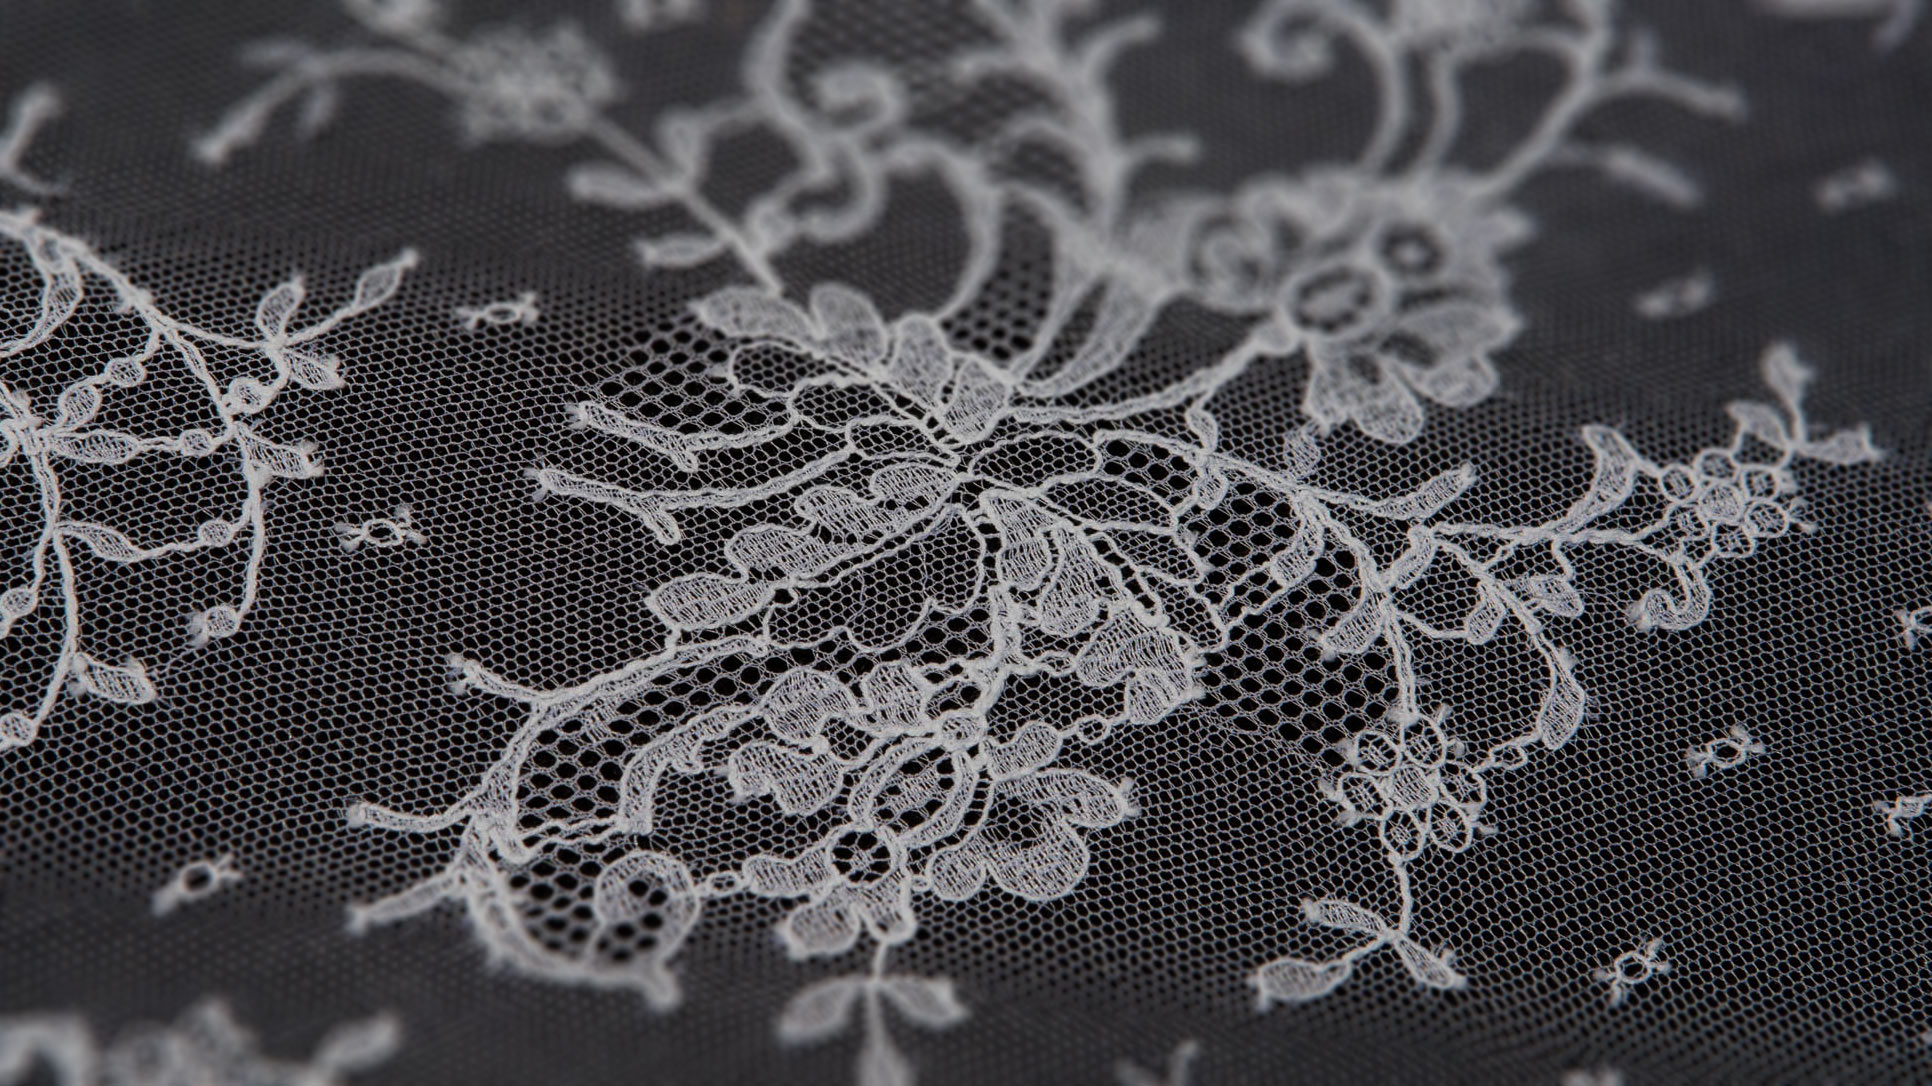 new arrivals of wedding lace french lace online shop